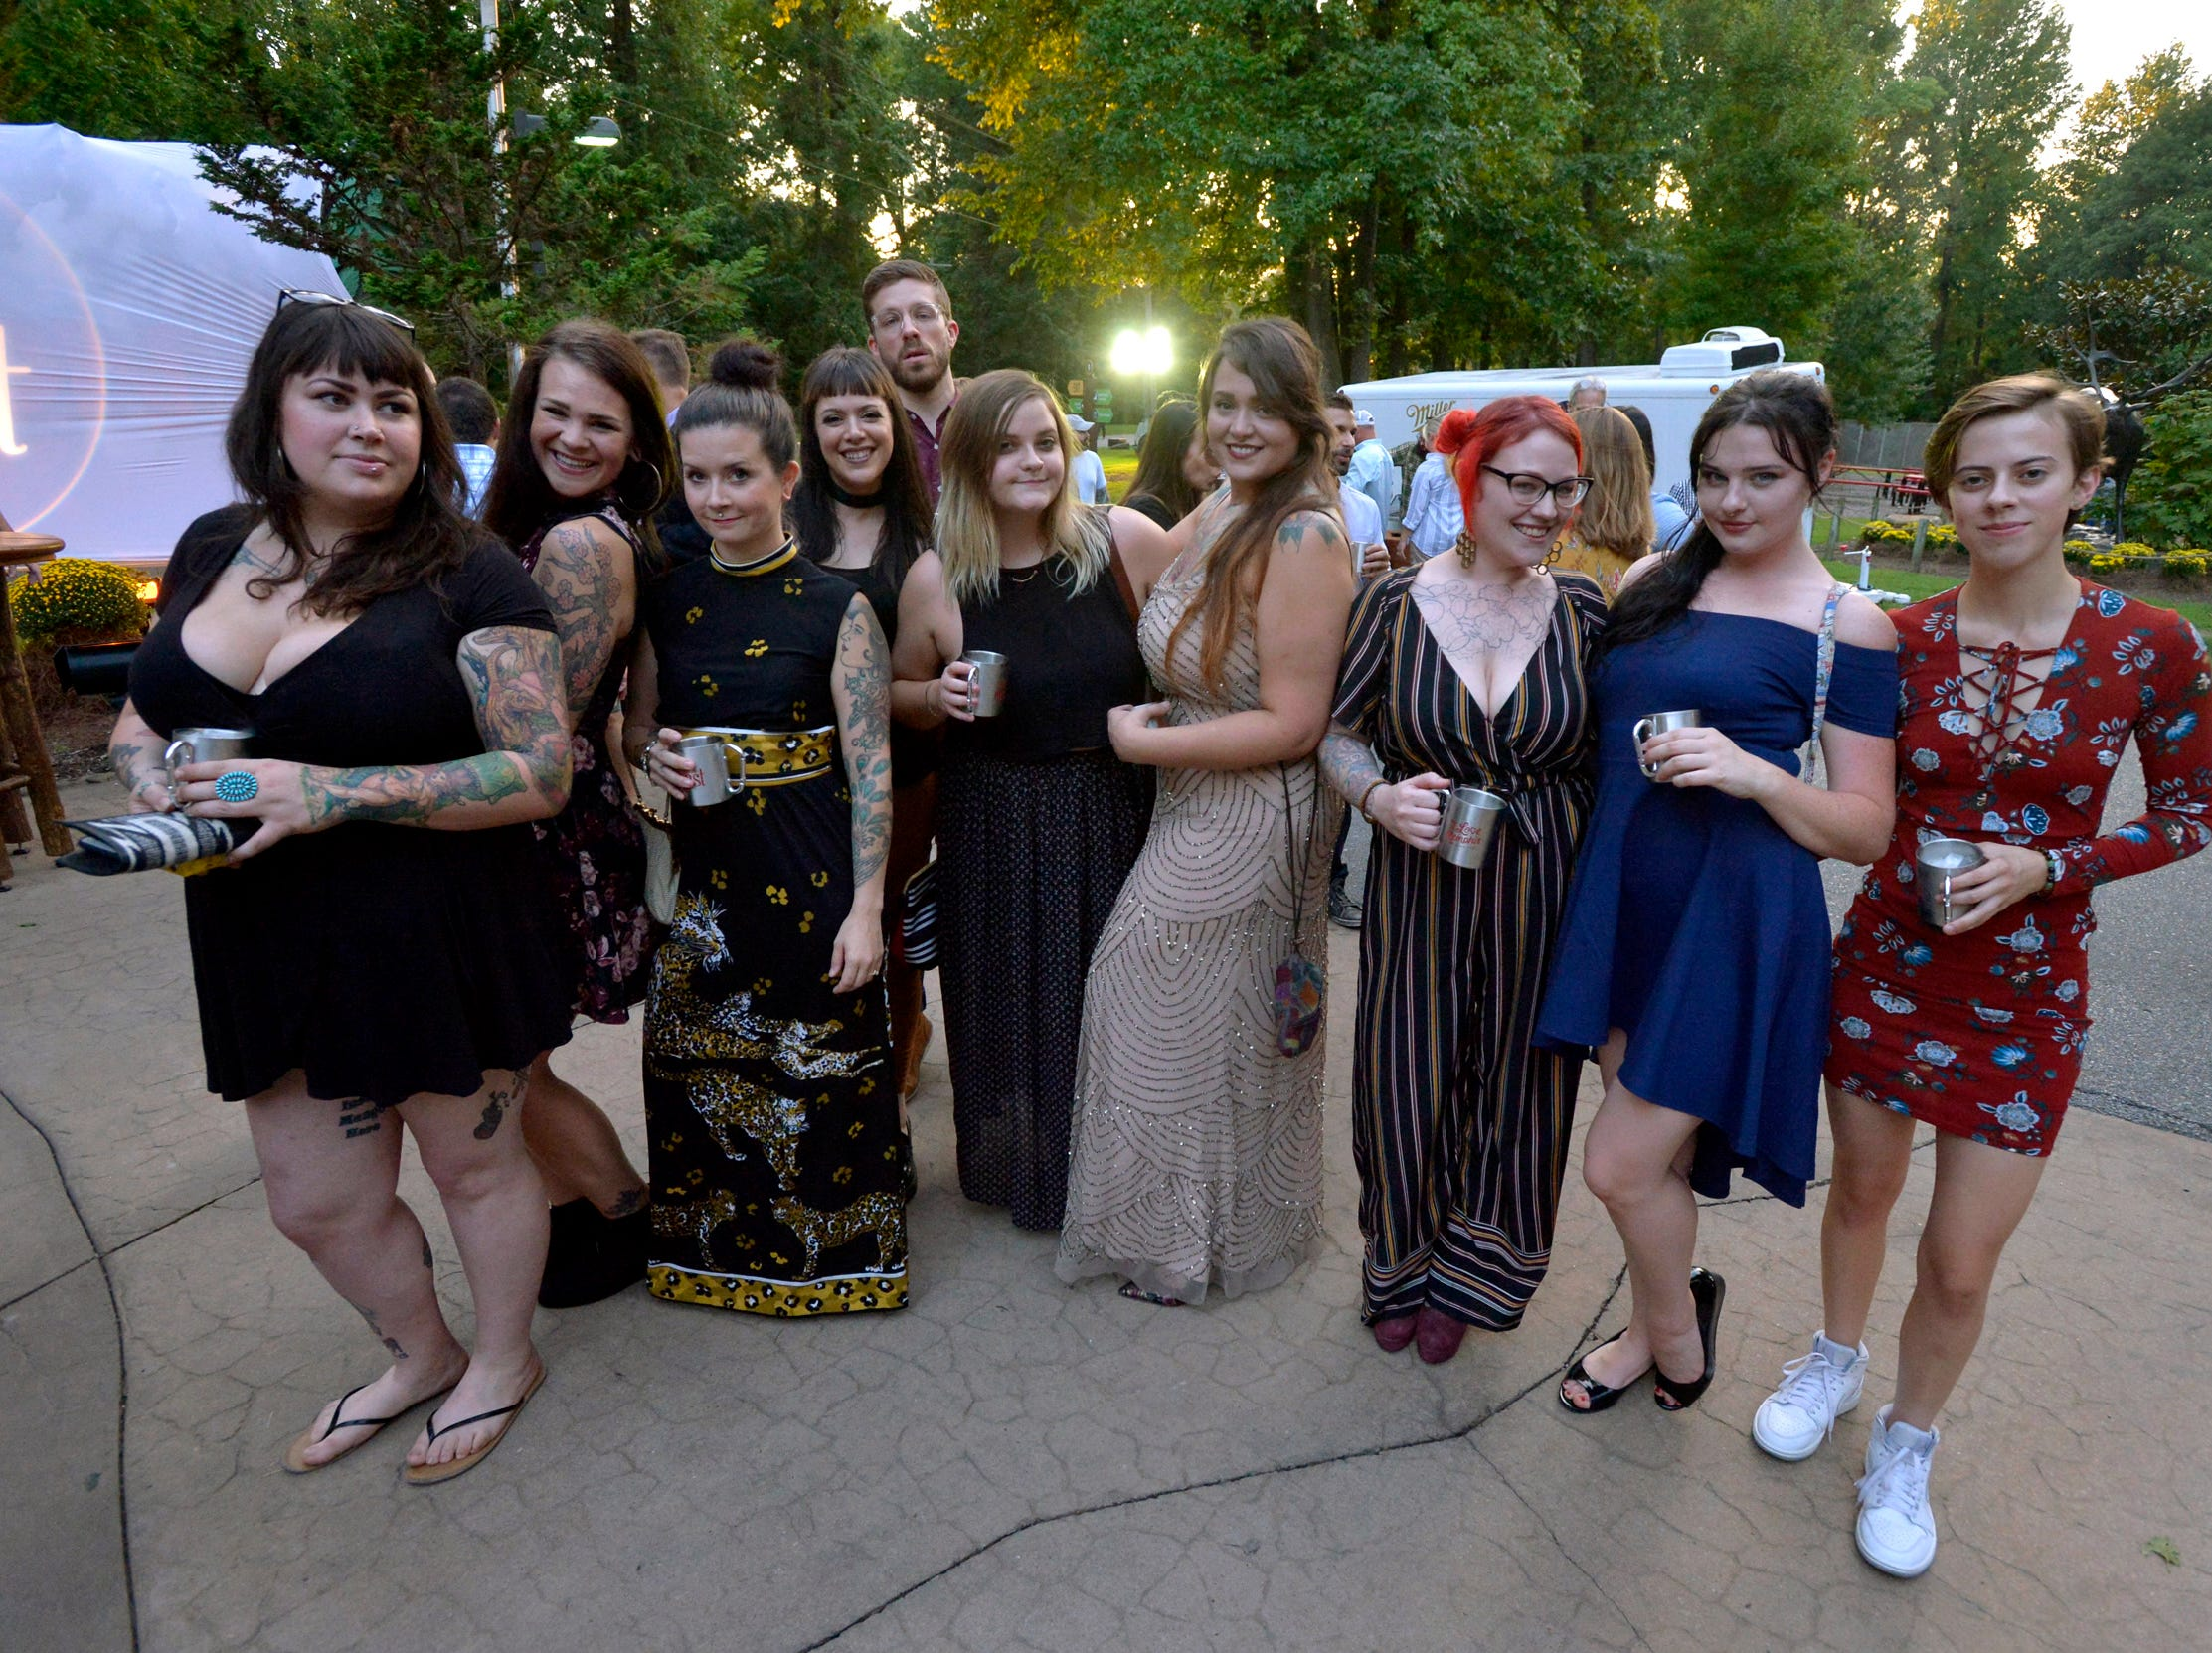 September 13, 2018 - Representatives with So Fresh and So Green housekeeping pose for a photo during the 2018 Memphis Most awards party at Teton Trek in the Memphis Zoo. (Brandon Dill for The Commercial Appeal)